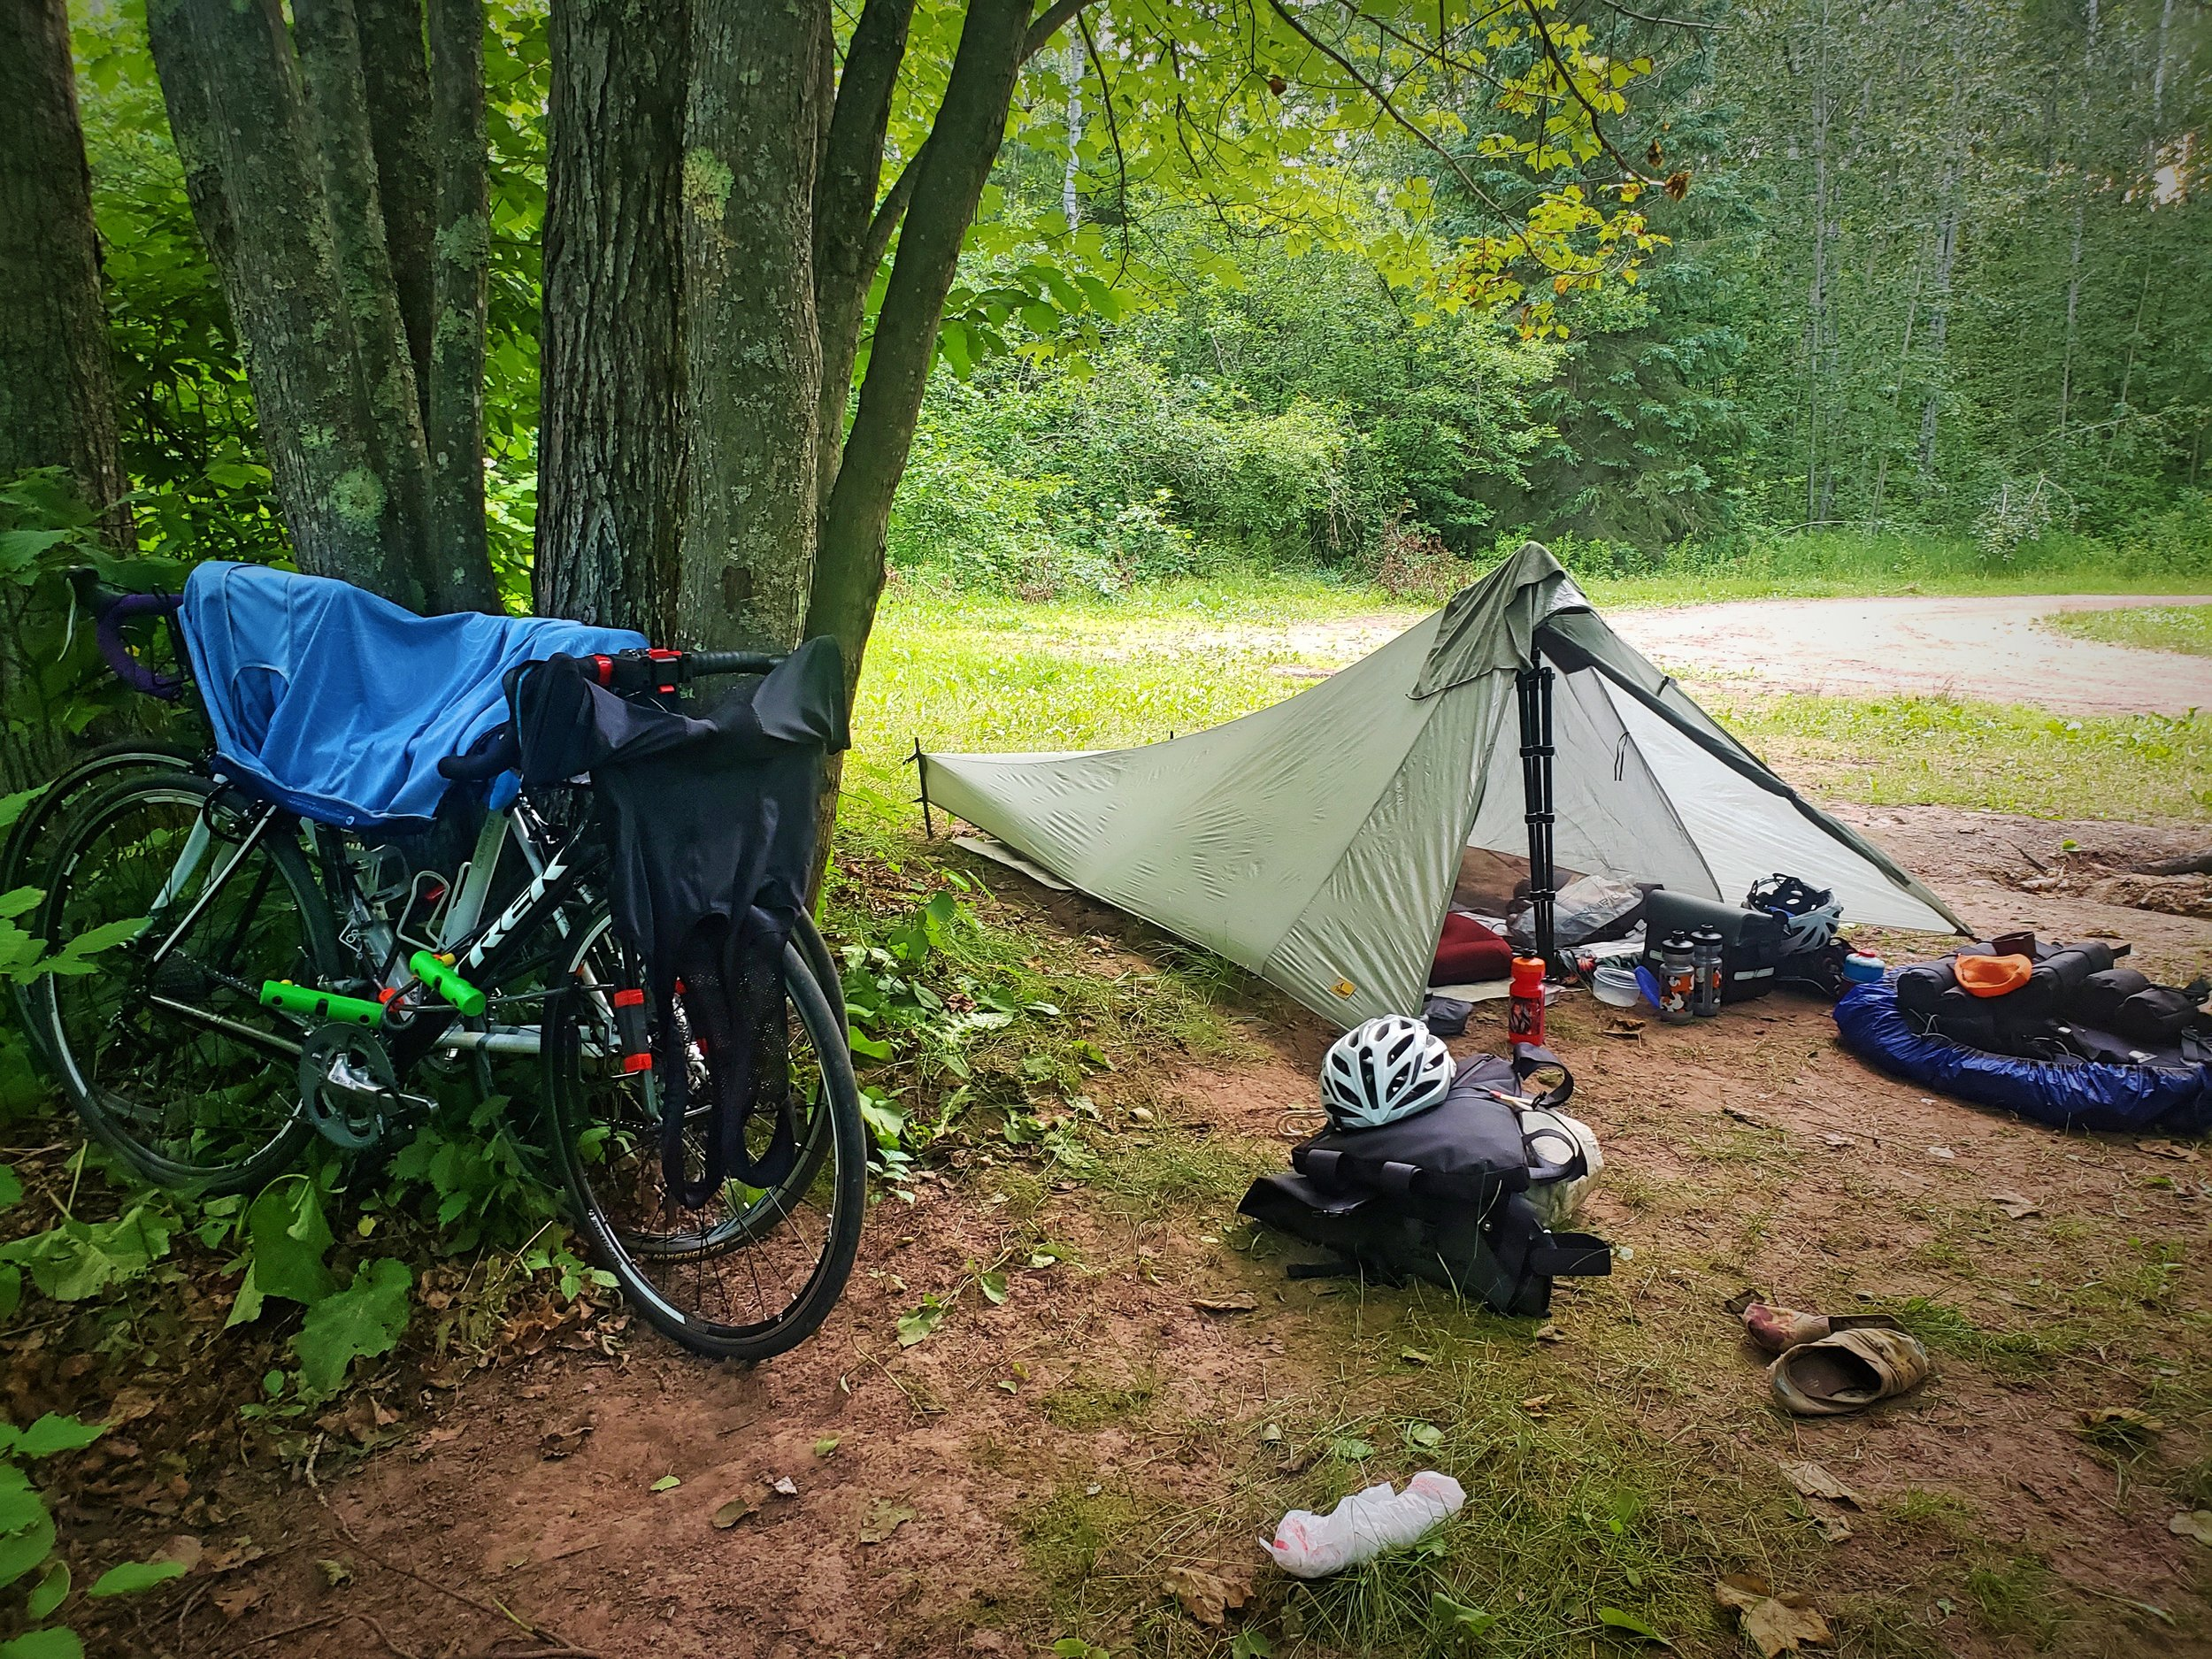 Our free campsite along the Brule River in Northern Wisconsin during our bike tour.